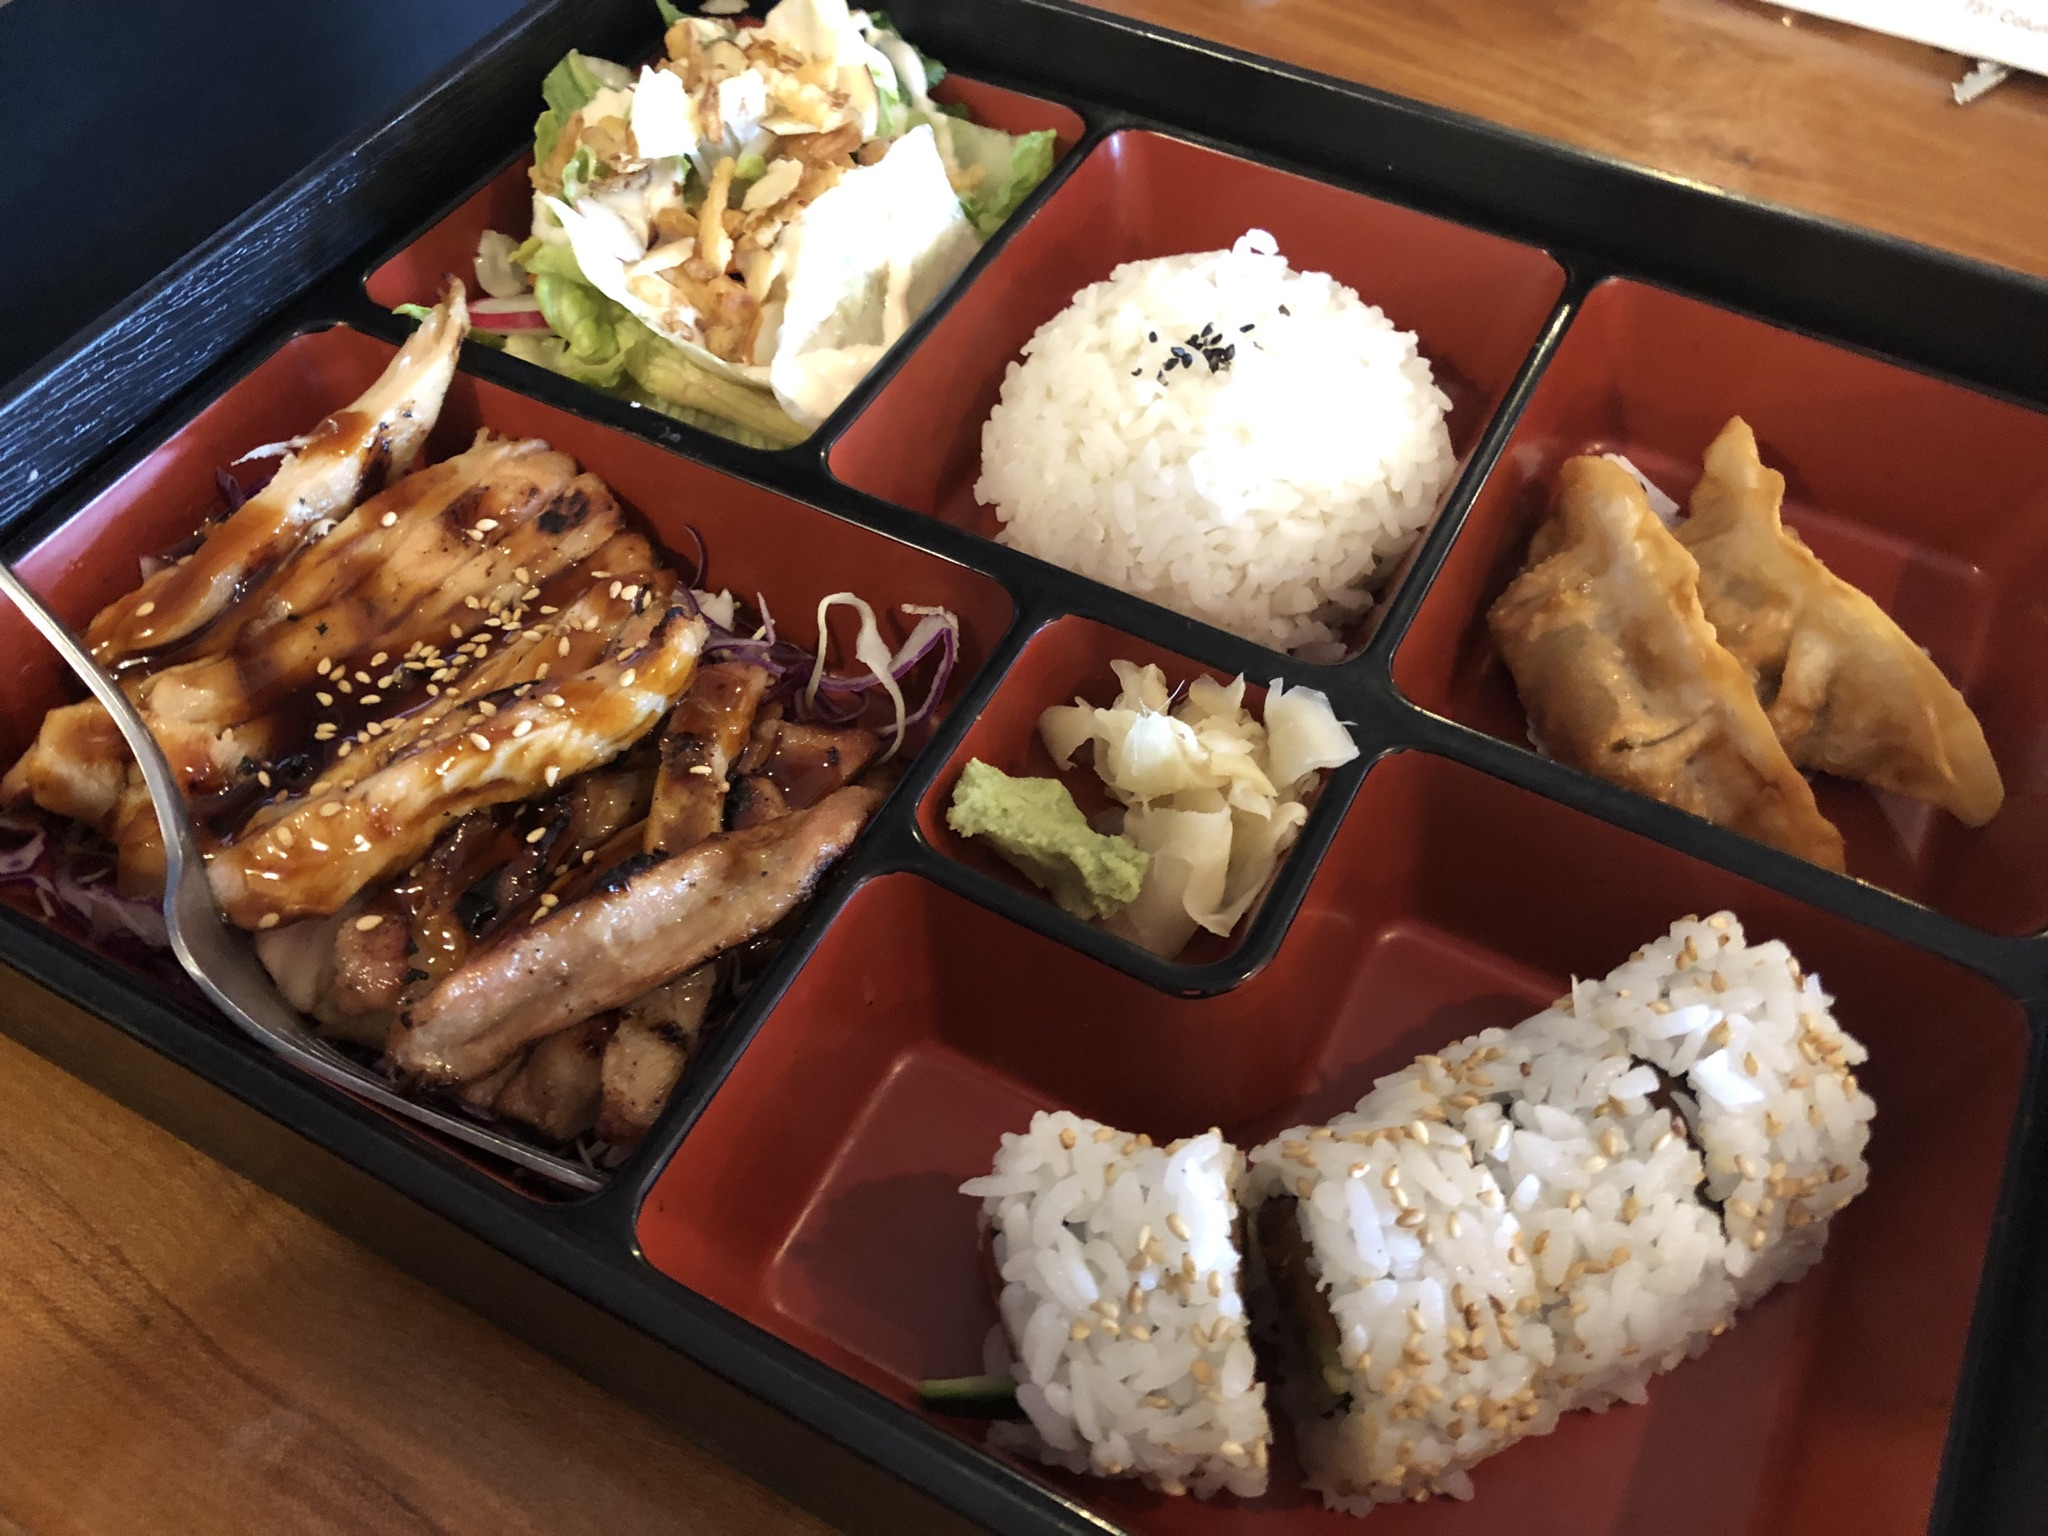 A Bento Box and Sushi at Sushi Ya in Kennewick – May 16 2019